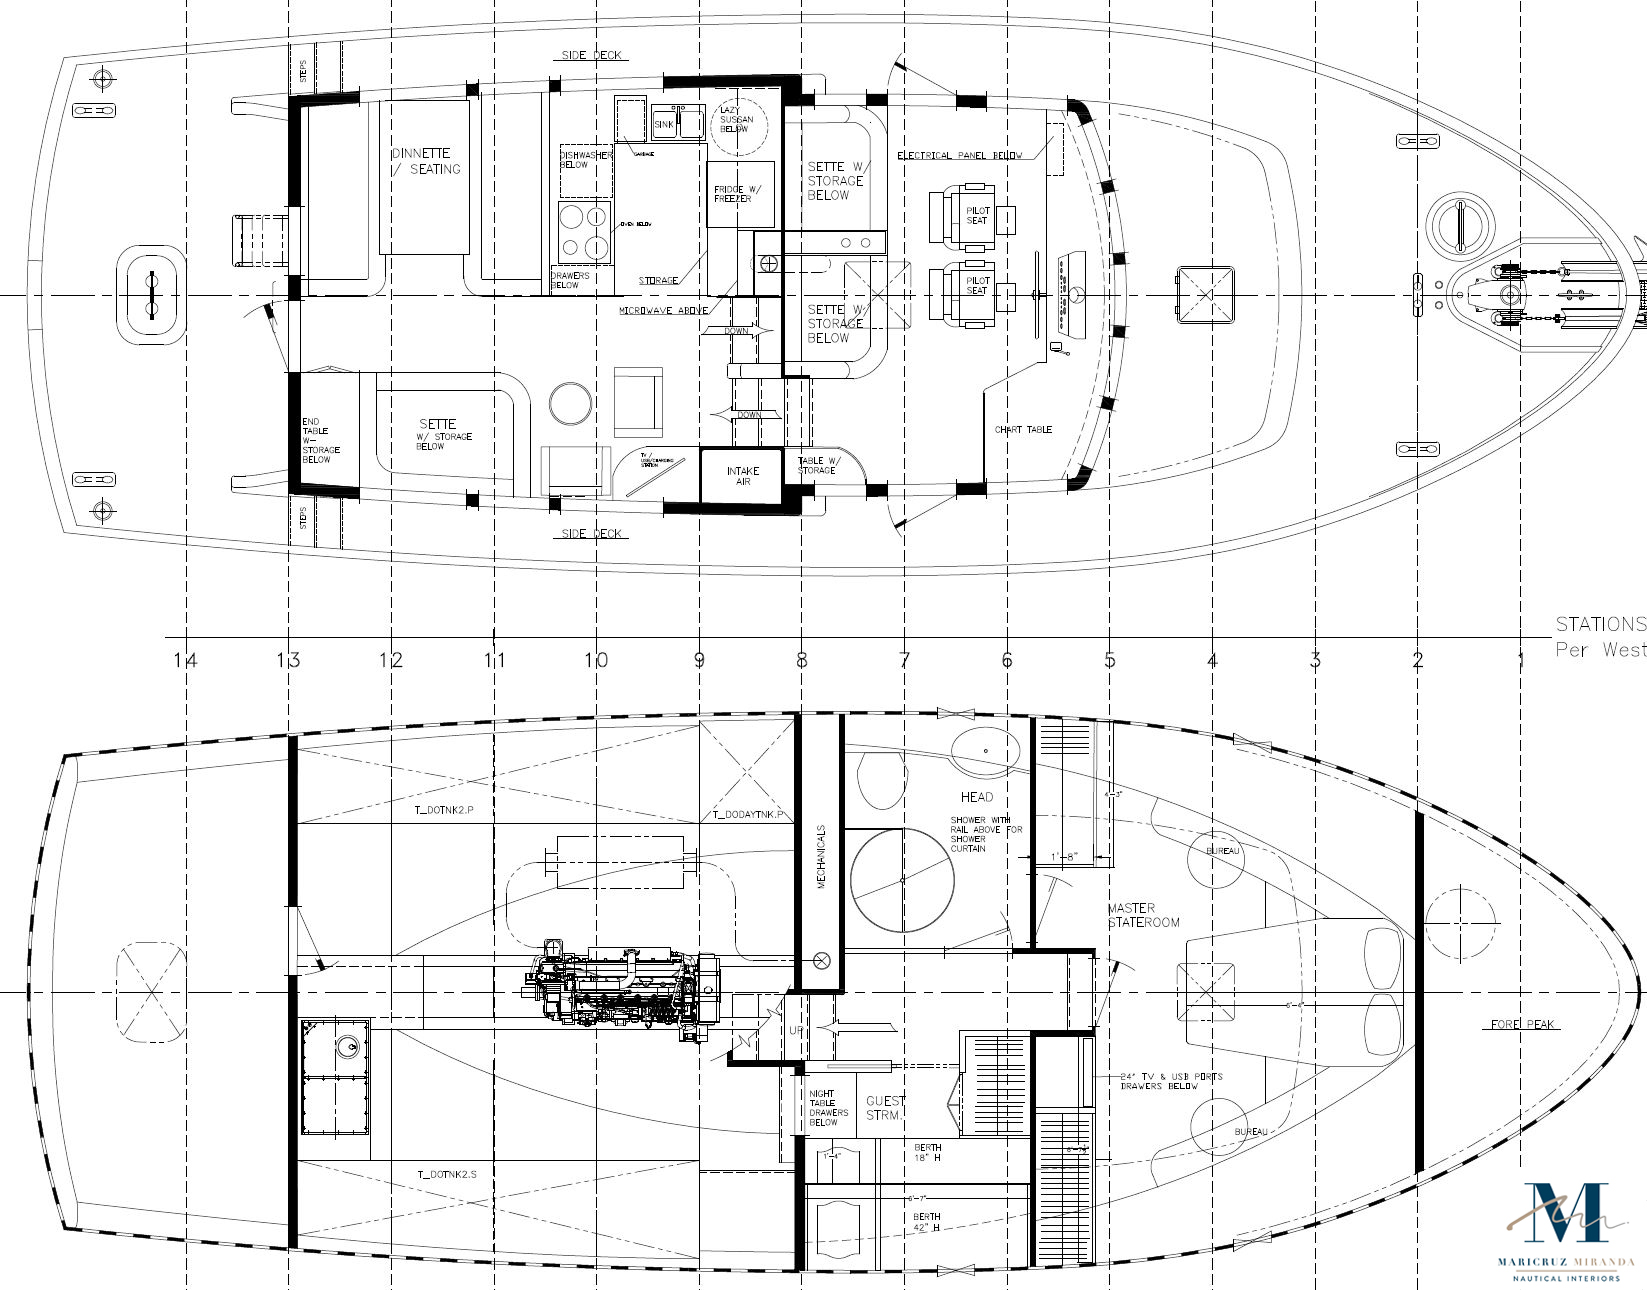 Floorplans for lower and upper decks